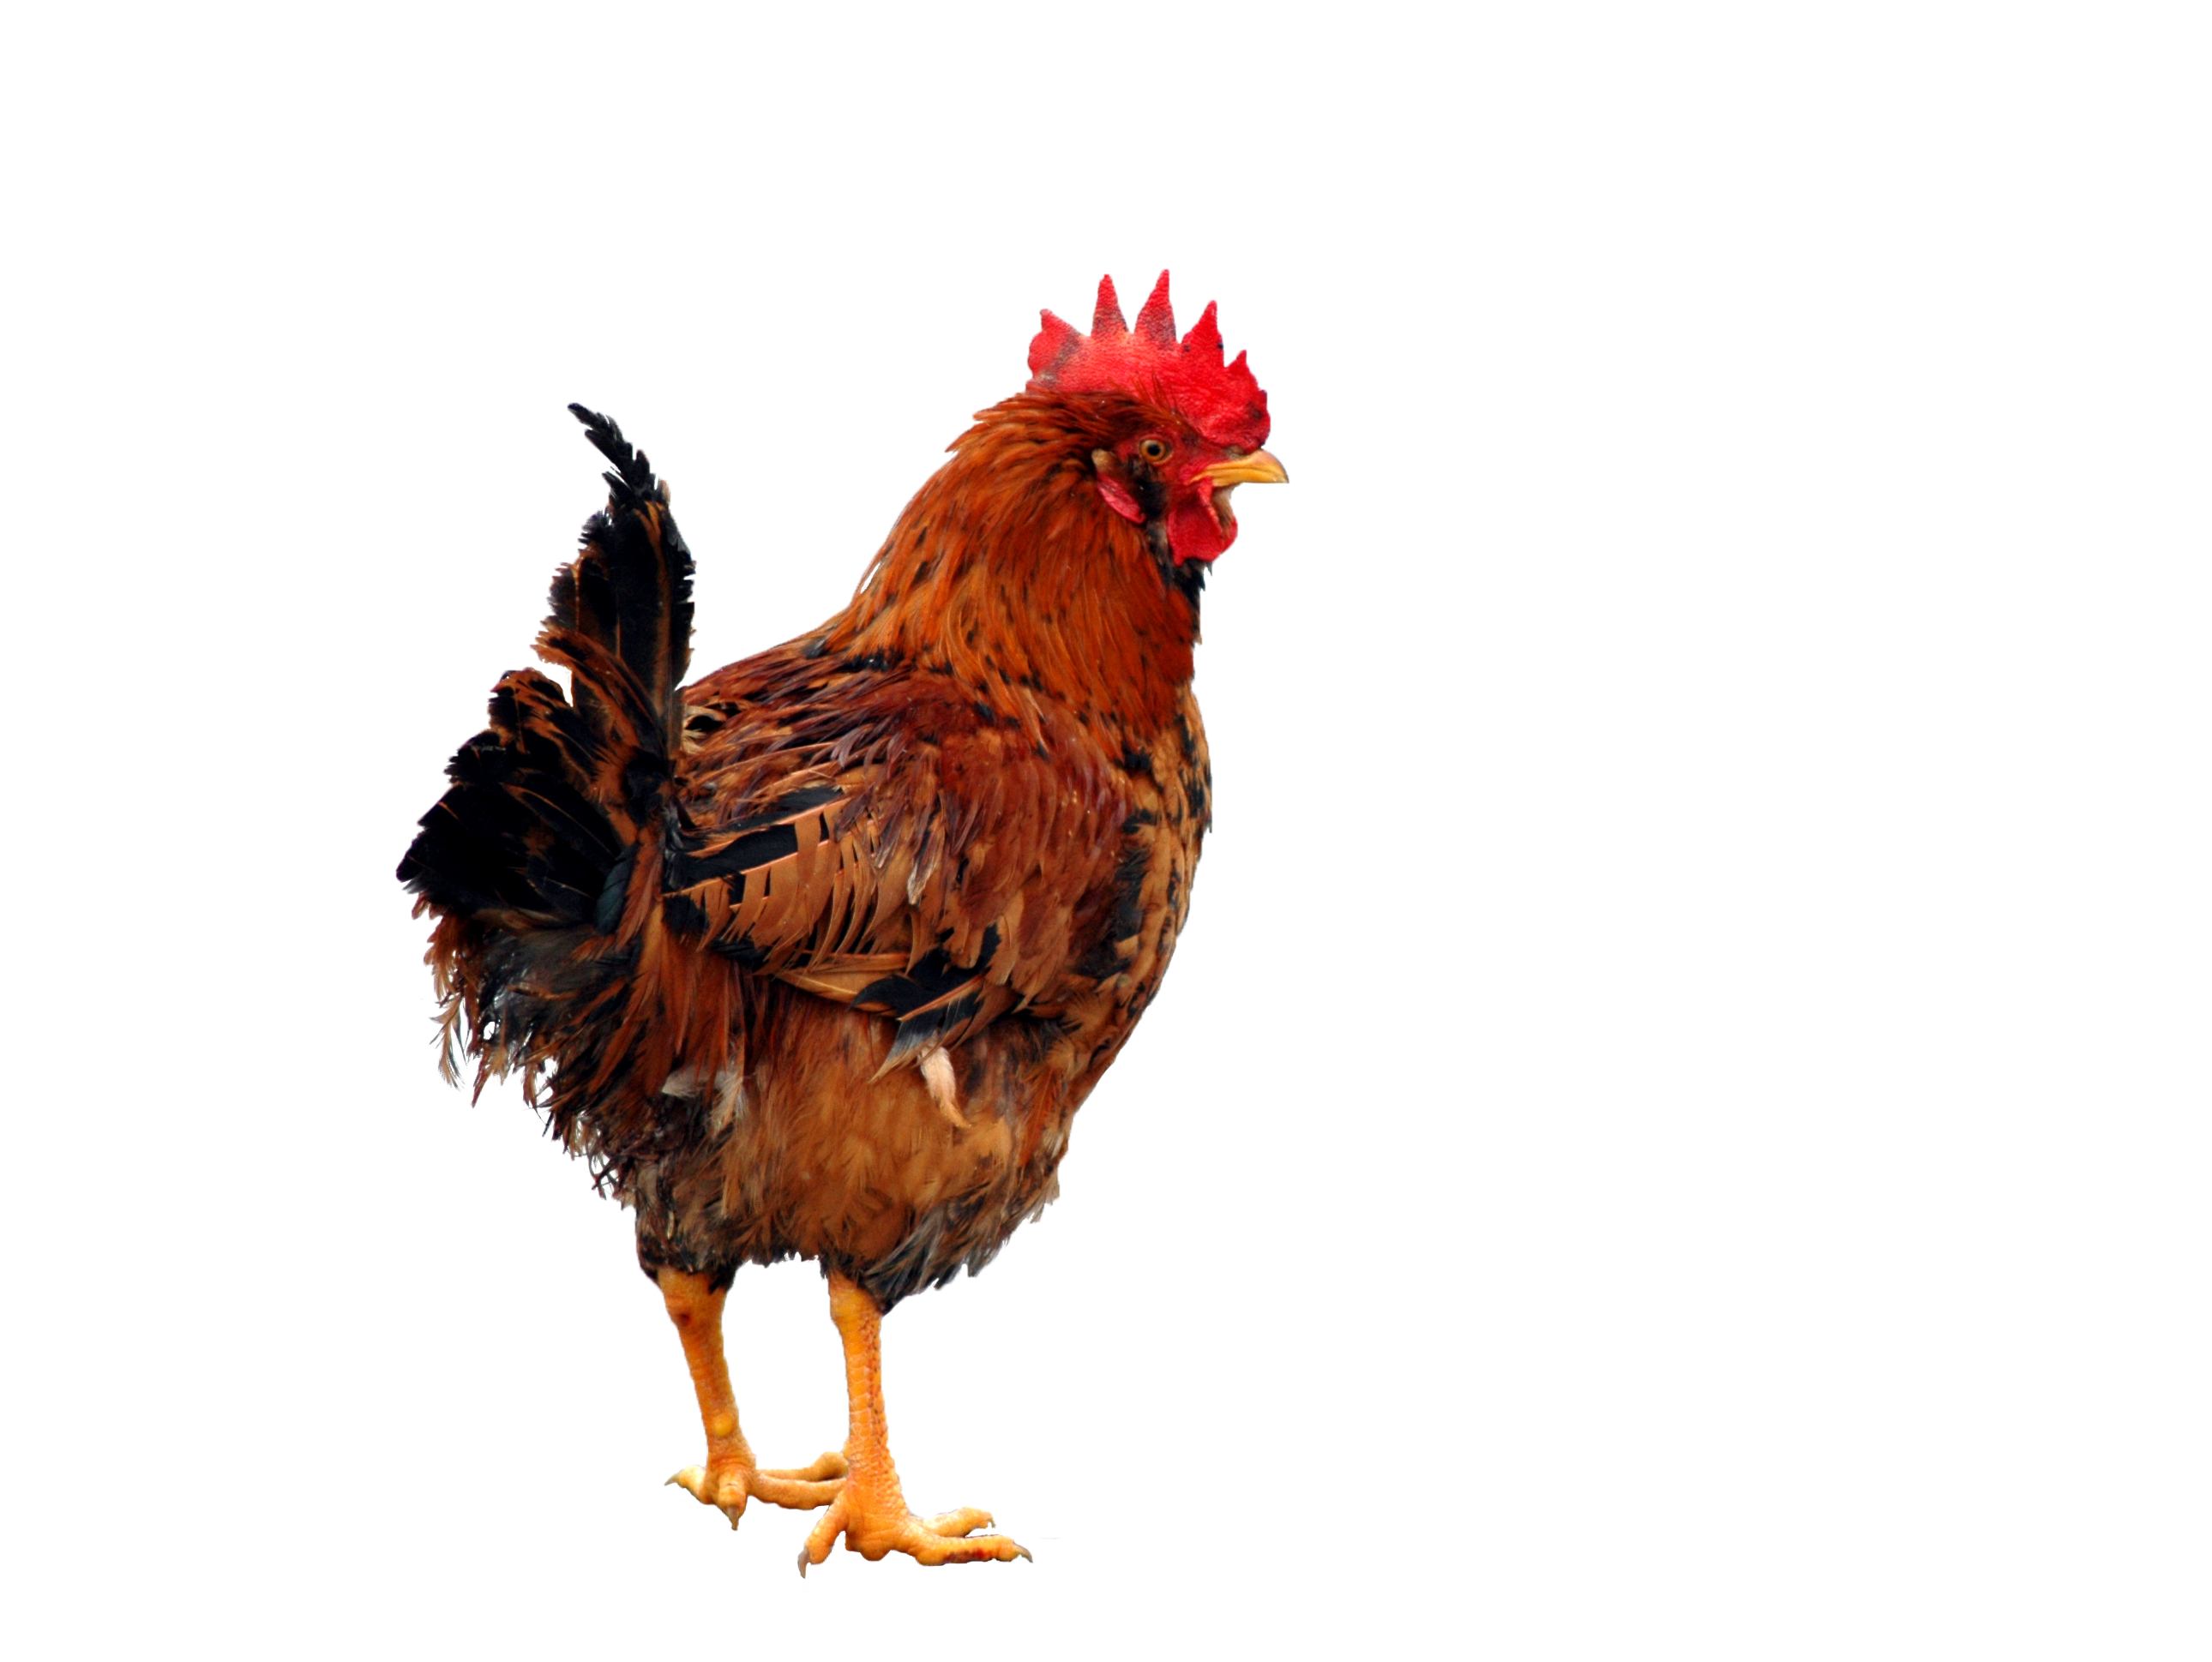 Chicken Png - Chicken PNG Clipart